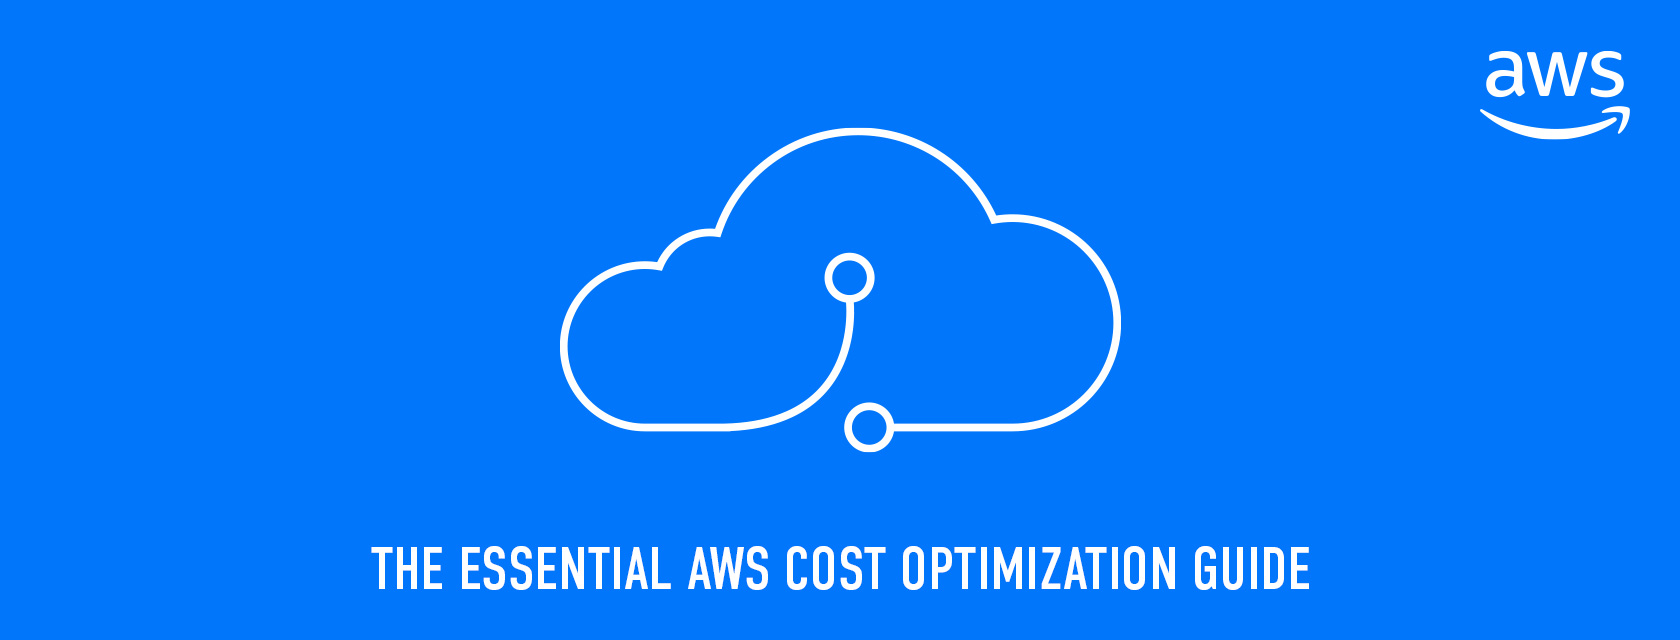 The Essential AWS Cost Optimization Guide